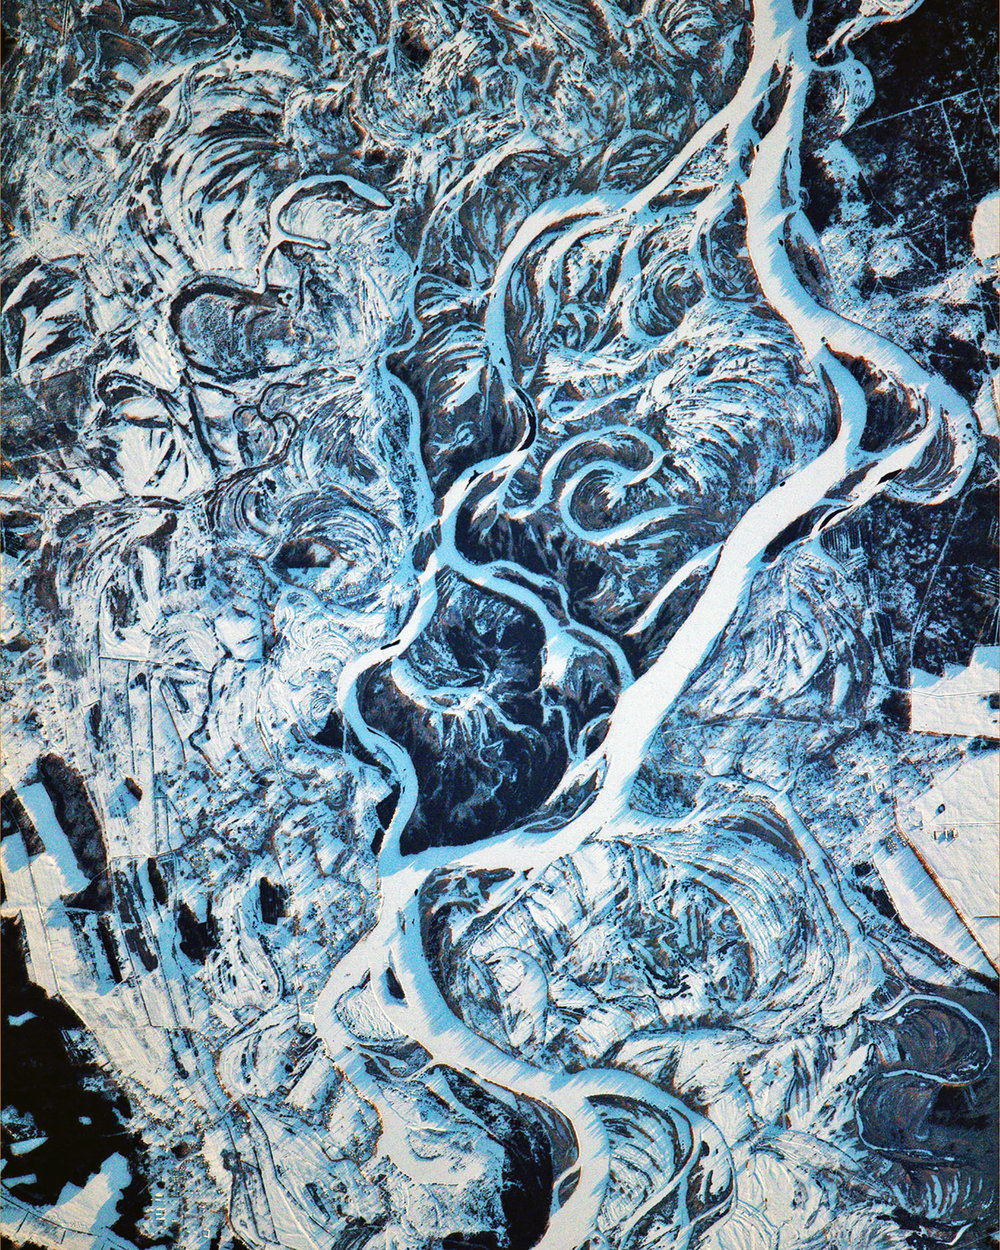 """Swirling snow drifts accent the terrain surrounding the Dnieper River, which flows for roughly 1,400 miles (2,200 km) from Russia to the Black Sea. The Dnieper is the longest river in the Ukraine and Belarus, and the fourth-longest river in Europe. This amazing image was captured by European Space Agency astronaut Thomas Pesquet while aboard the International Space Station in February 2017.  51°11'35.0""""N, 30°31'25.8""""E  Source imagery: NASA - National Aeronautics and Space Administration"""